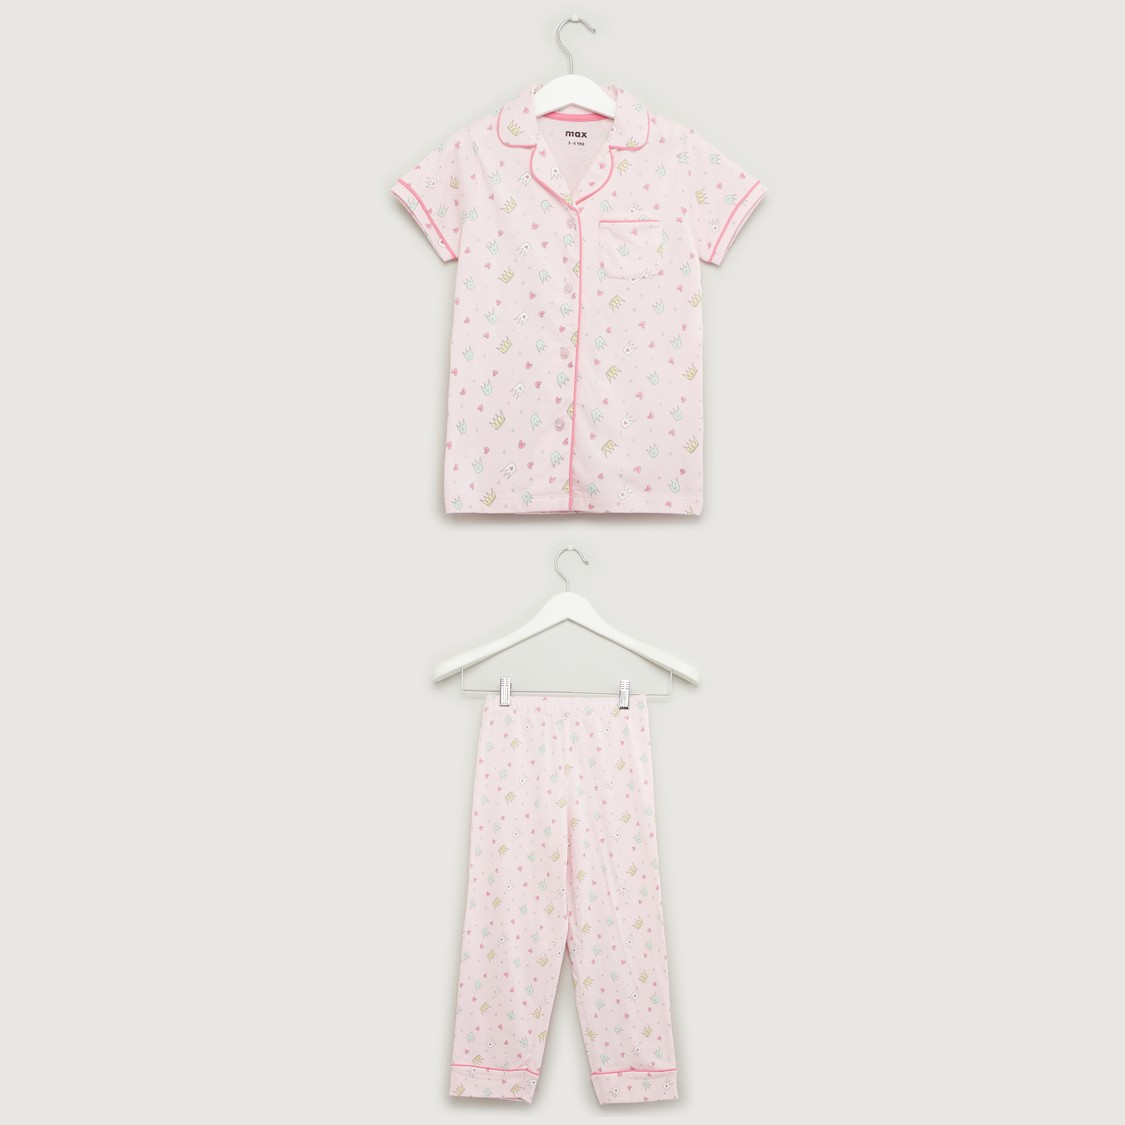 Printed Short Sleeves Sleepshirt with Pyjama Set